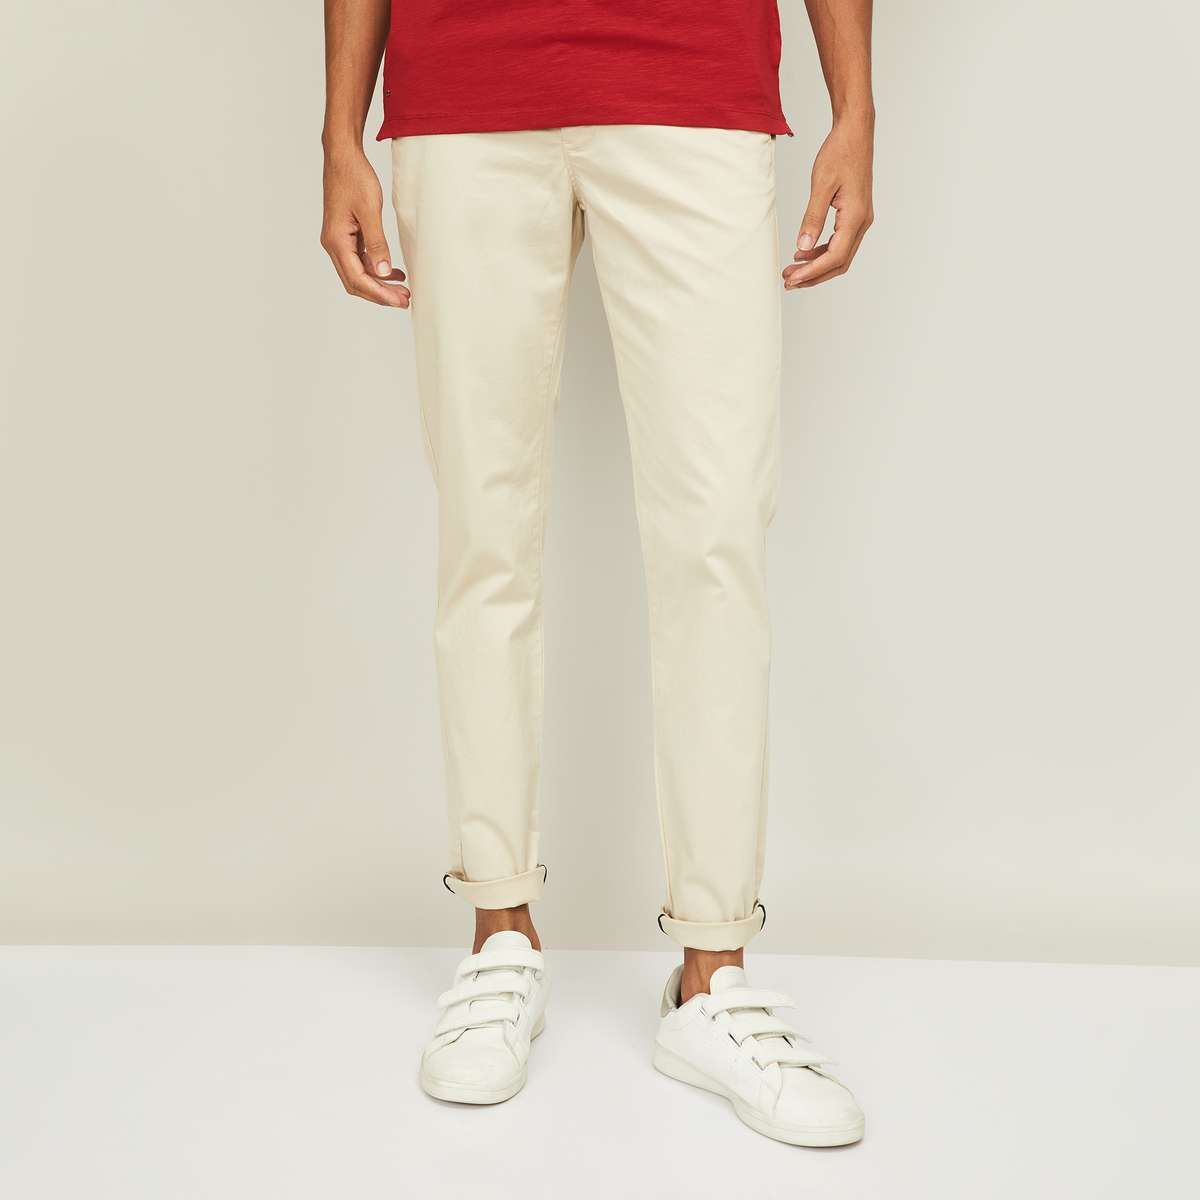 1.FAME FOREVER Men Solid Slim Tapereed Casual Trousers